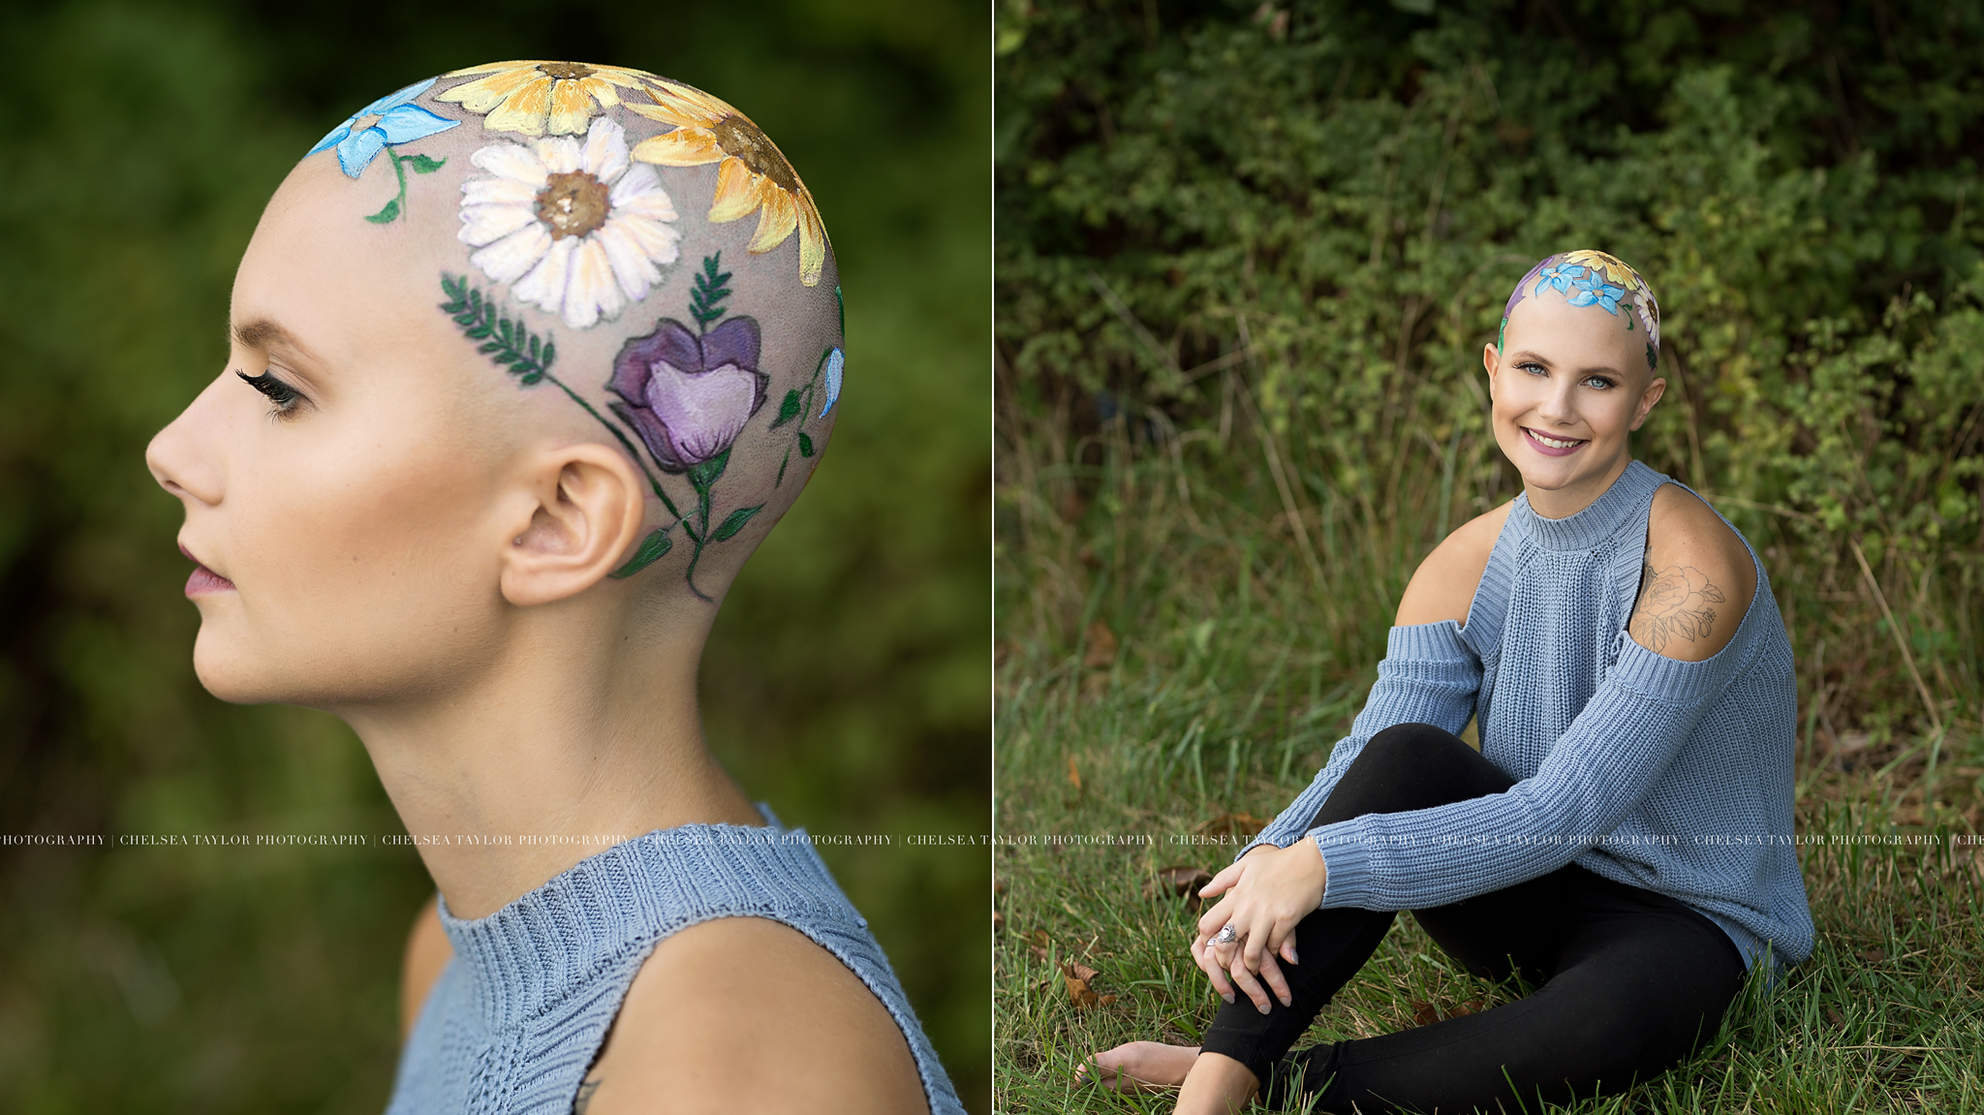 Teen Uses Senior Portraits to Embrace Her Alopecia: 'Losing My Hair Has Boosted My Confidence'